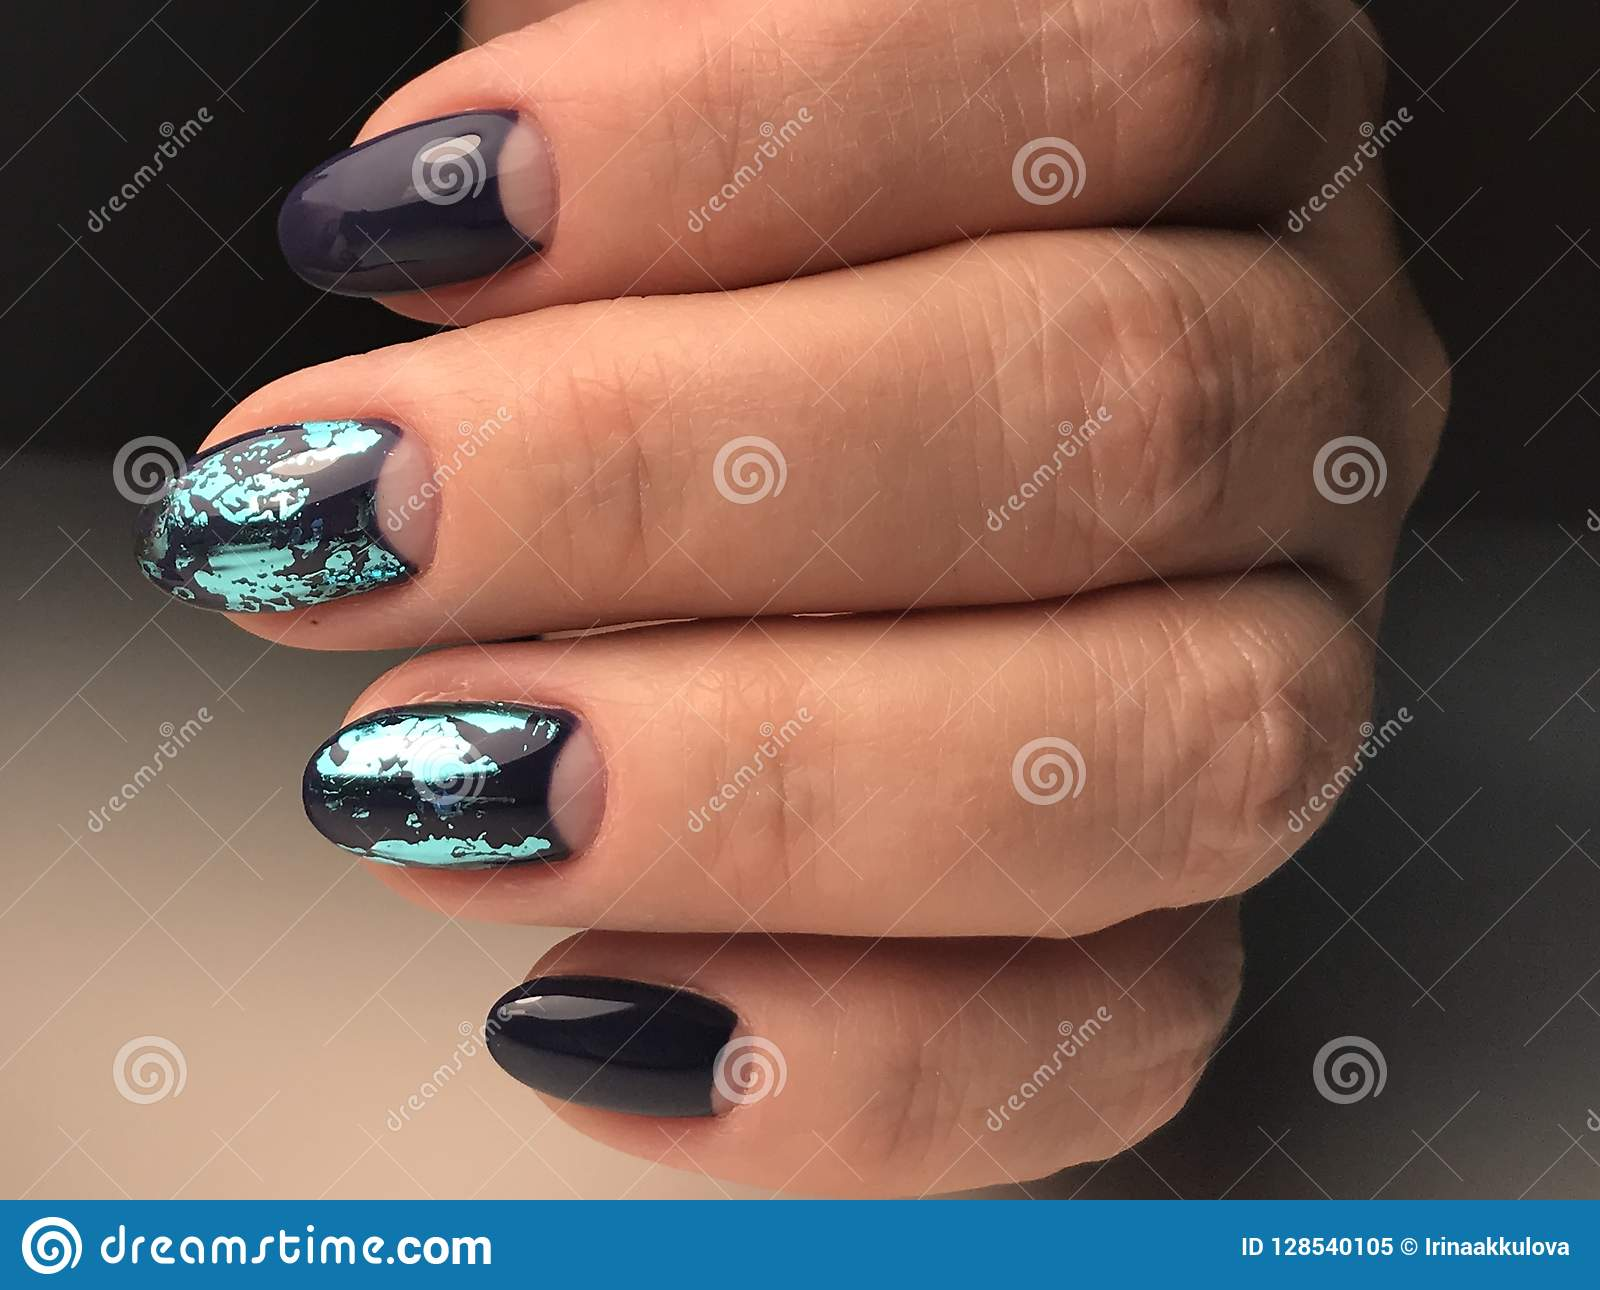 Unusual nail design stock image. Image of hands, forms - 128540105